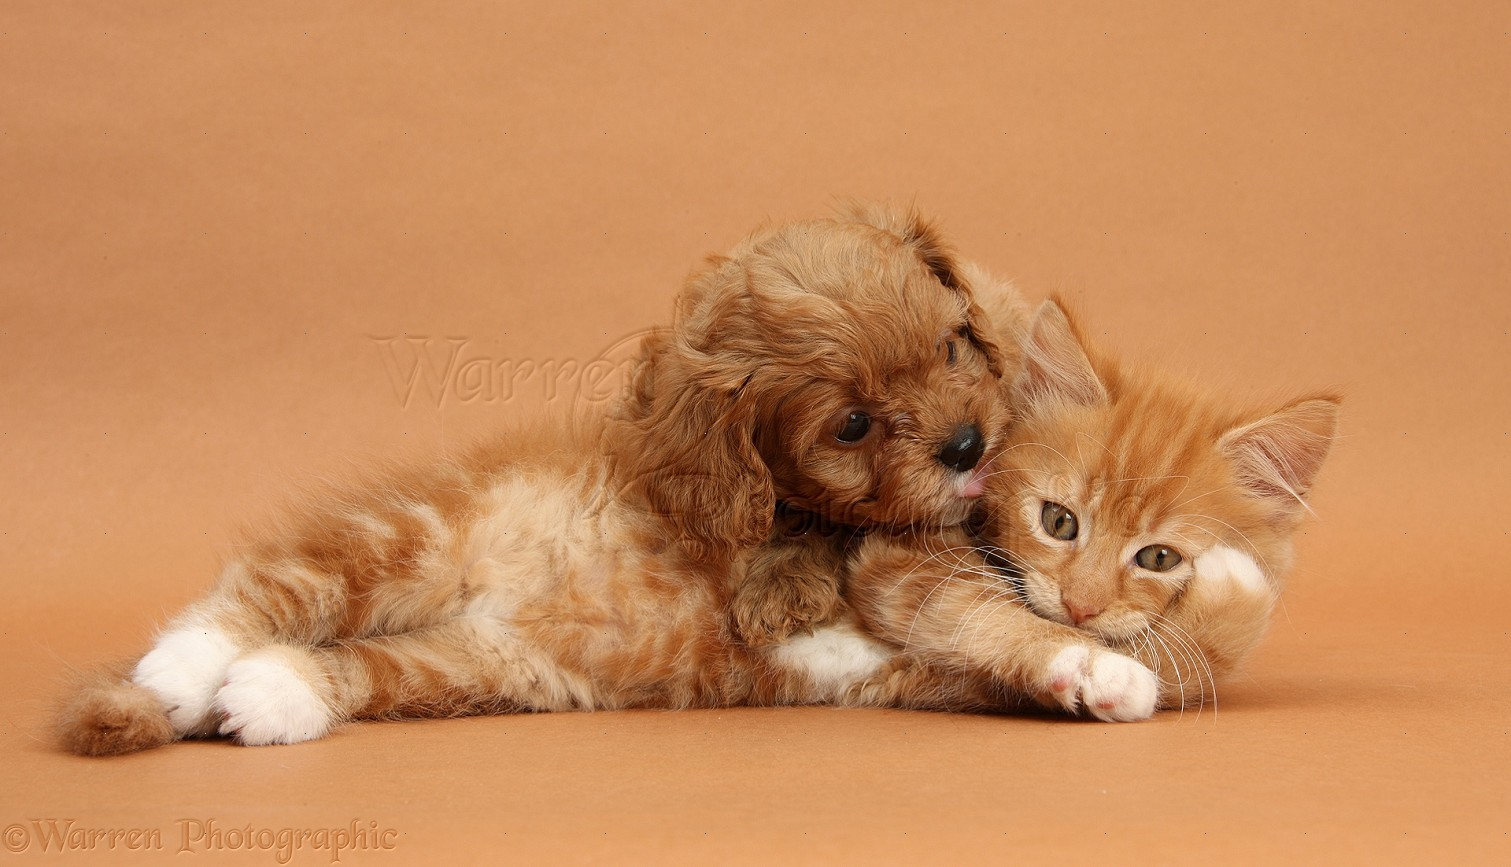 WP27476 Ginger kitten, Butch , 9 weeks old, and Cavapoo pup on brown ...